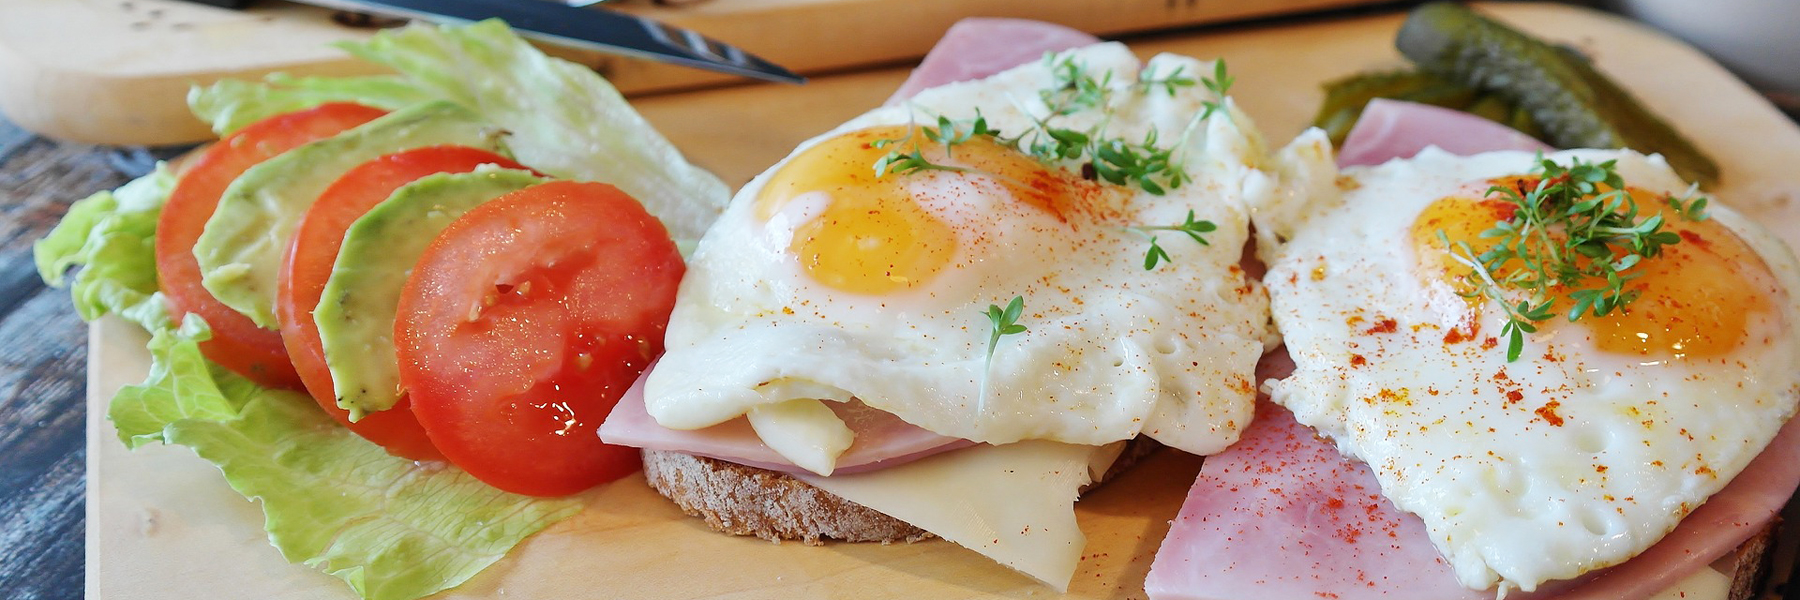 fried-eggs-2796406 1920